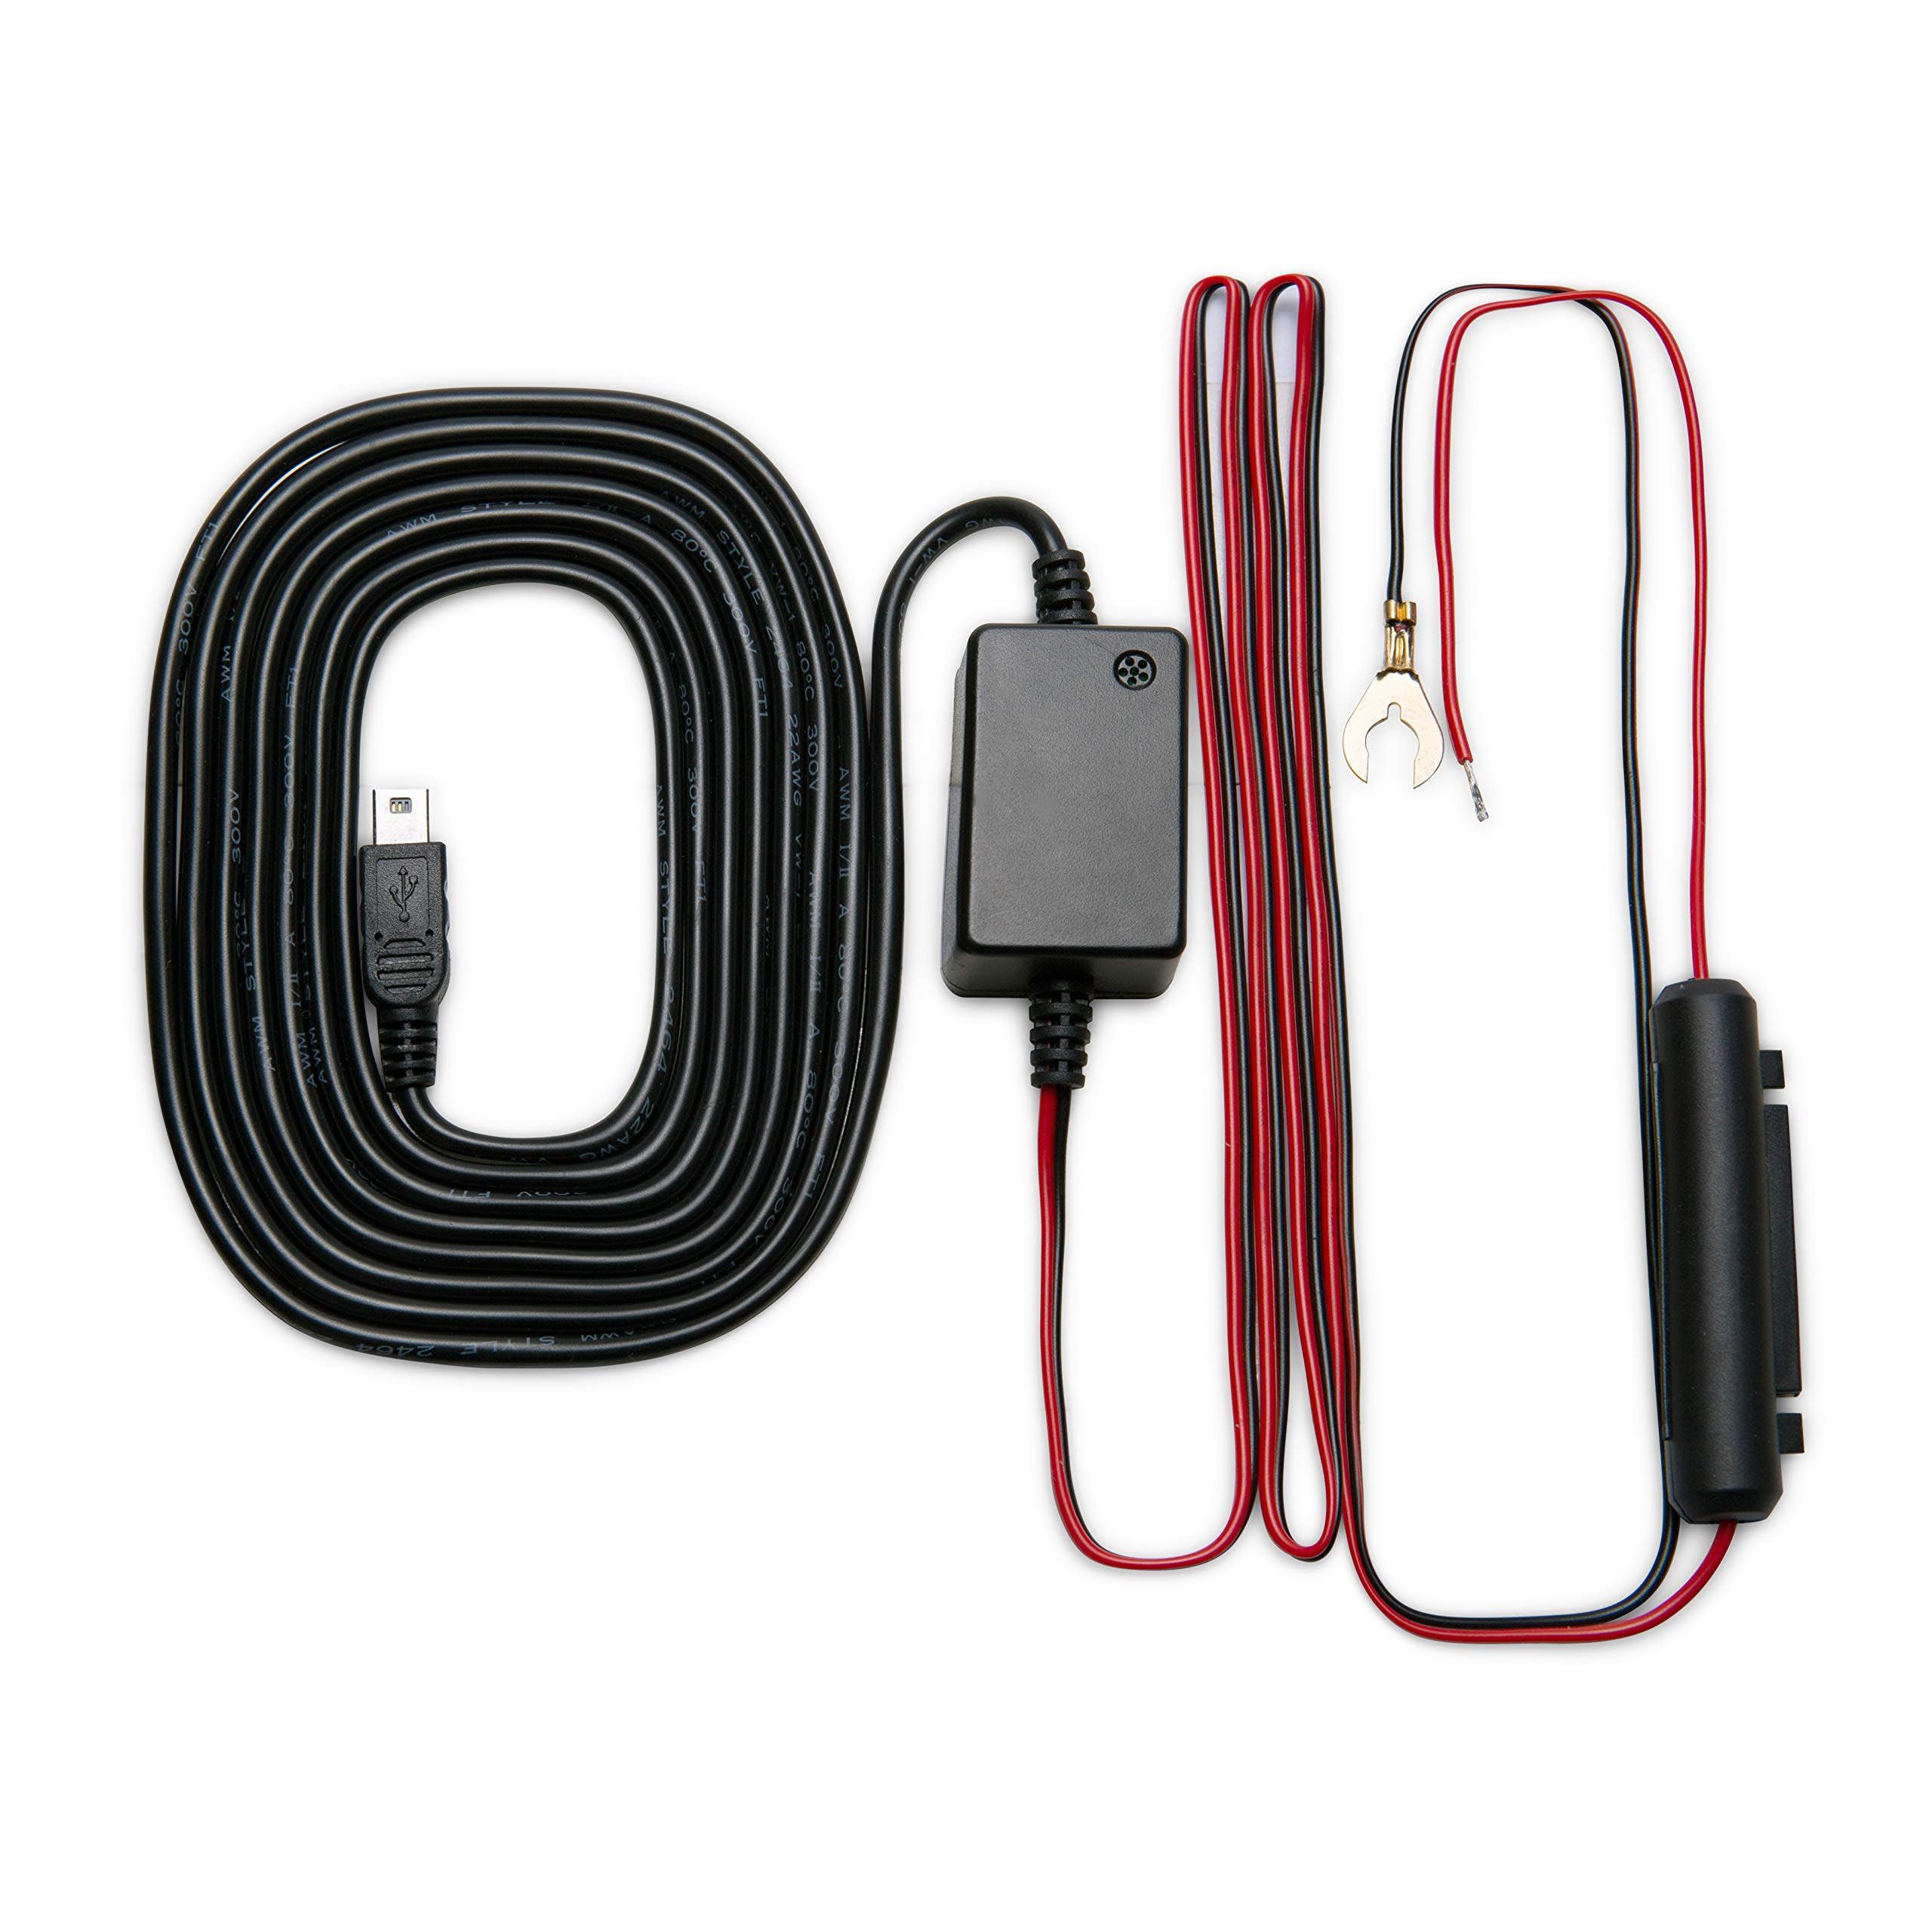 Spytec Mini USB Hardwire kit for GPS Tracker with Fuse Holder for Continuous Vehicle Tracking. by Spy Tec